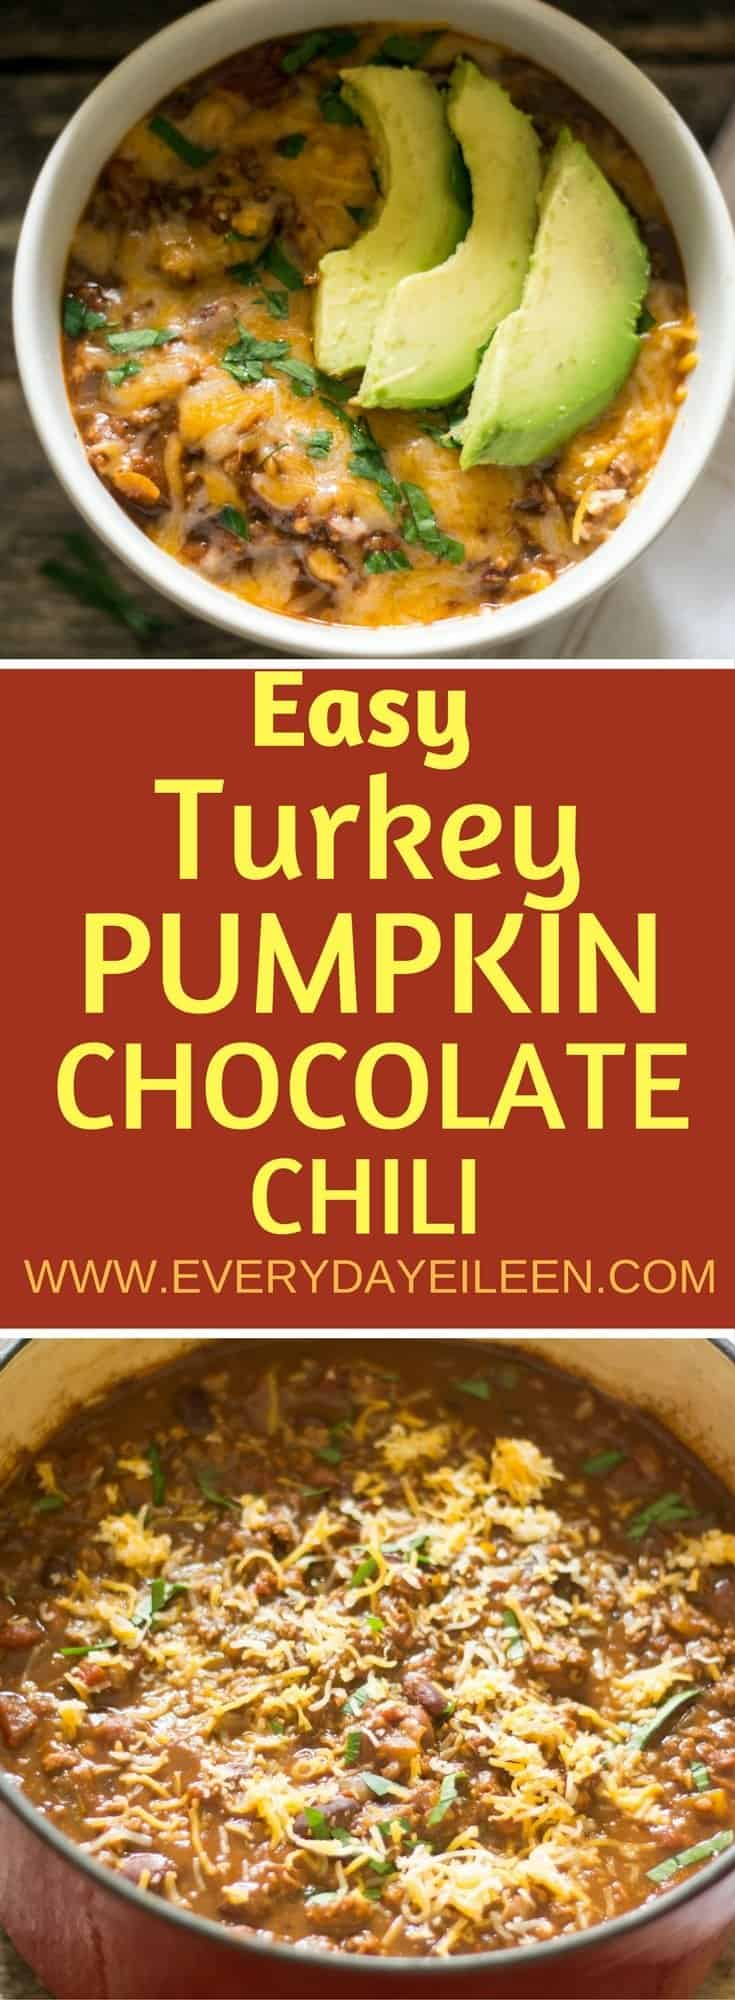 Easy TURKEY PUMPKIN CHOCOLATE CHILI